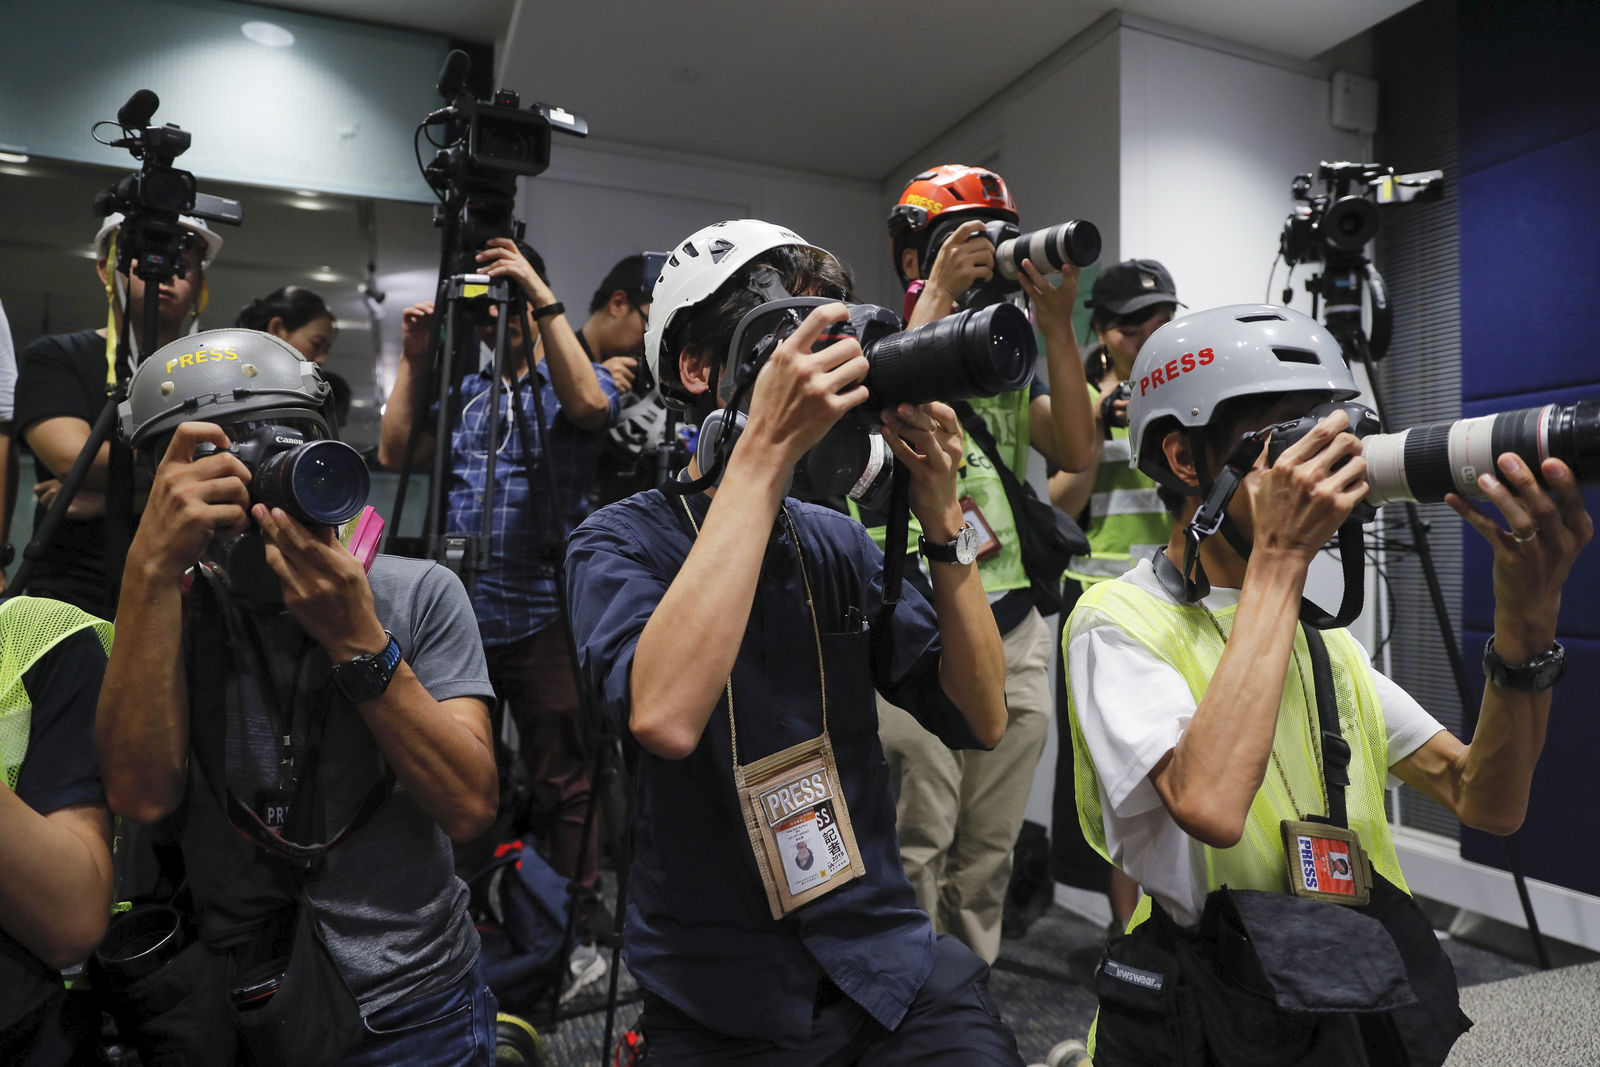 In a sign of protest against the police using force against the media, press photographers wear protective gear during a police media conference in Hong Kong, on Monday, Sept. 9, 2019.{ } (AP Photo/Kin Cheung)